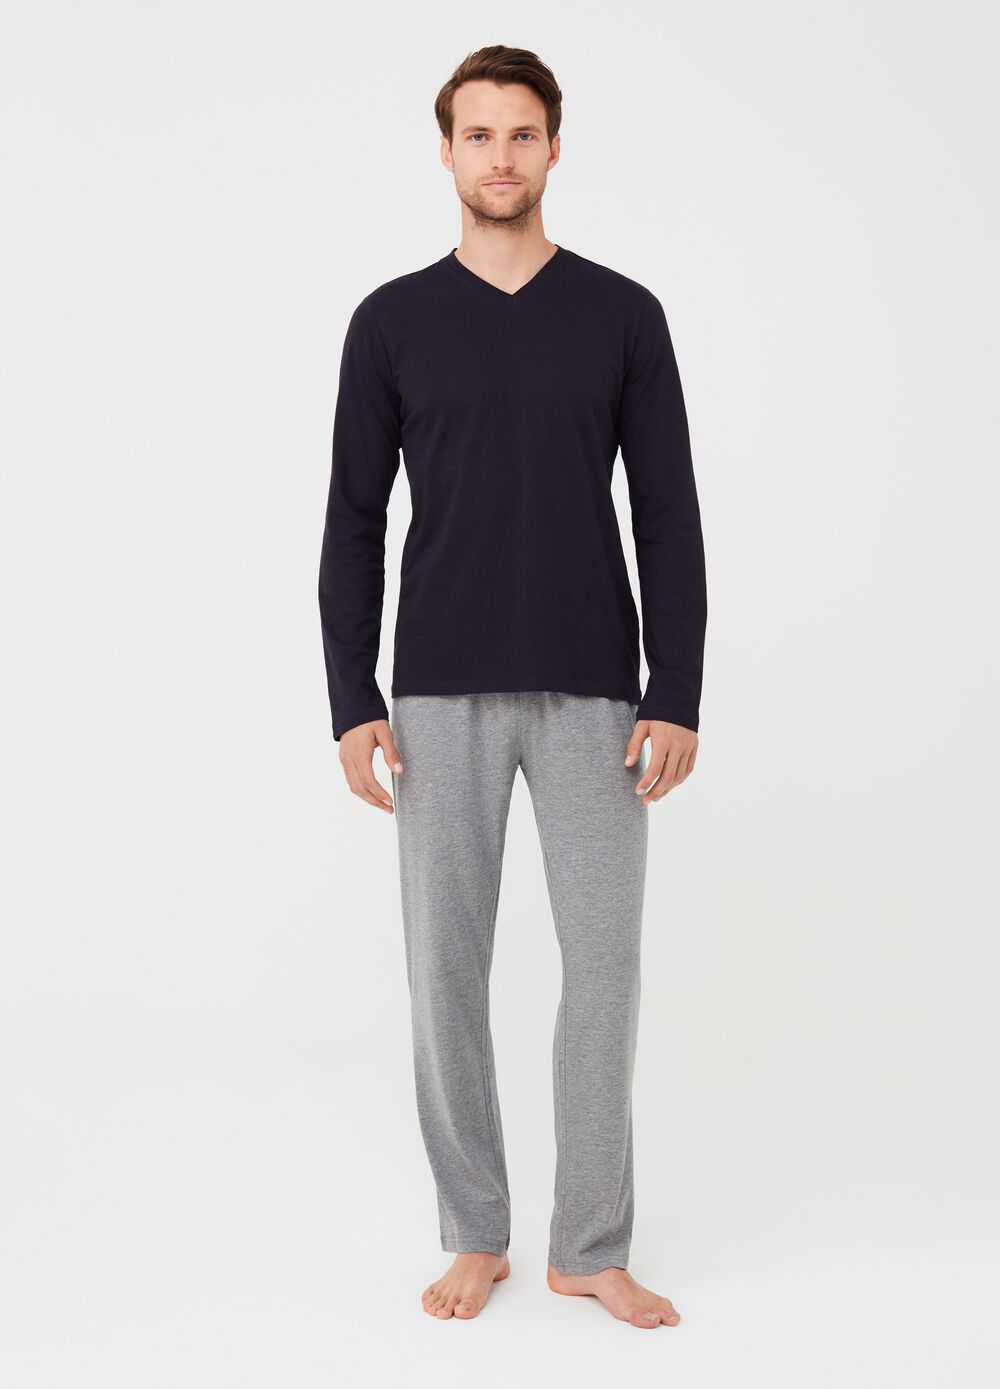 V-neck pyjamas with trousers and top